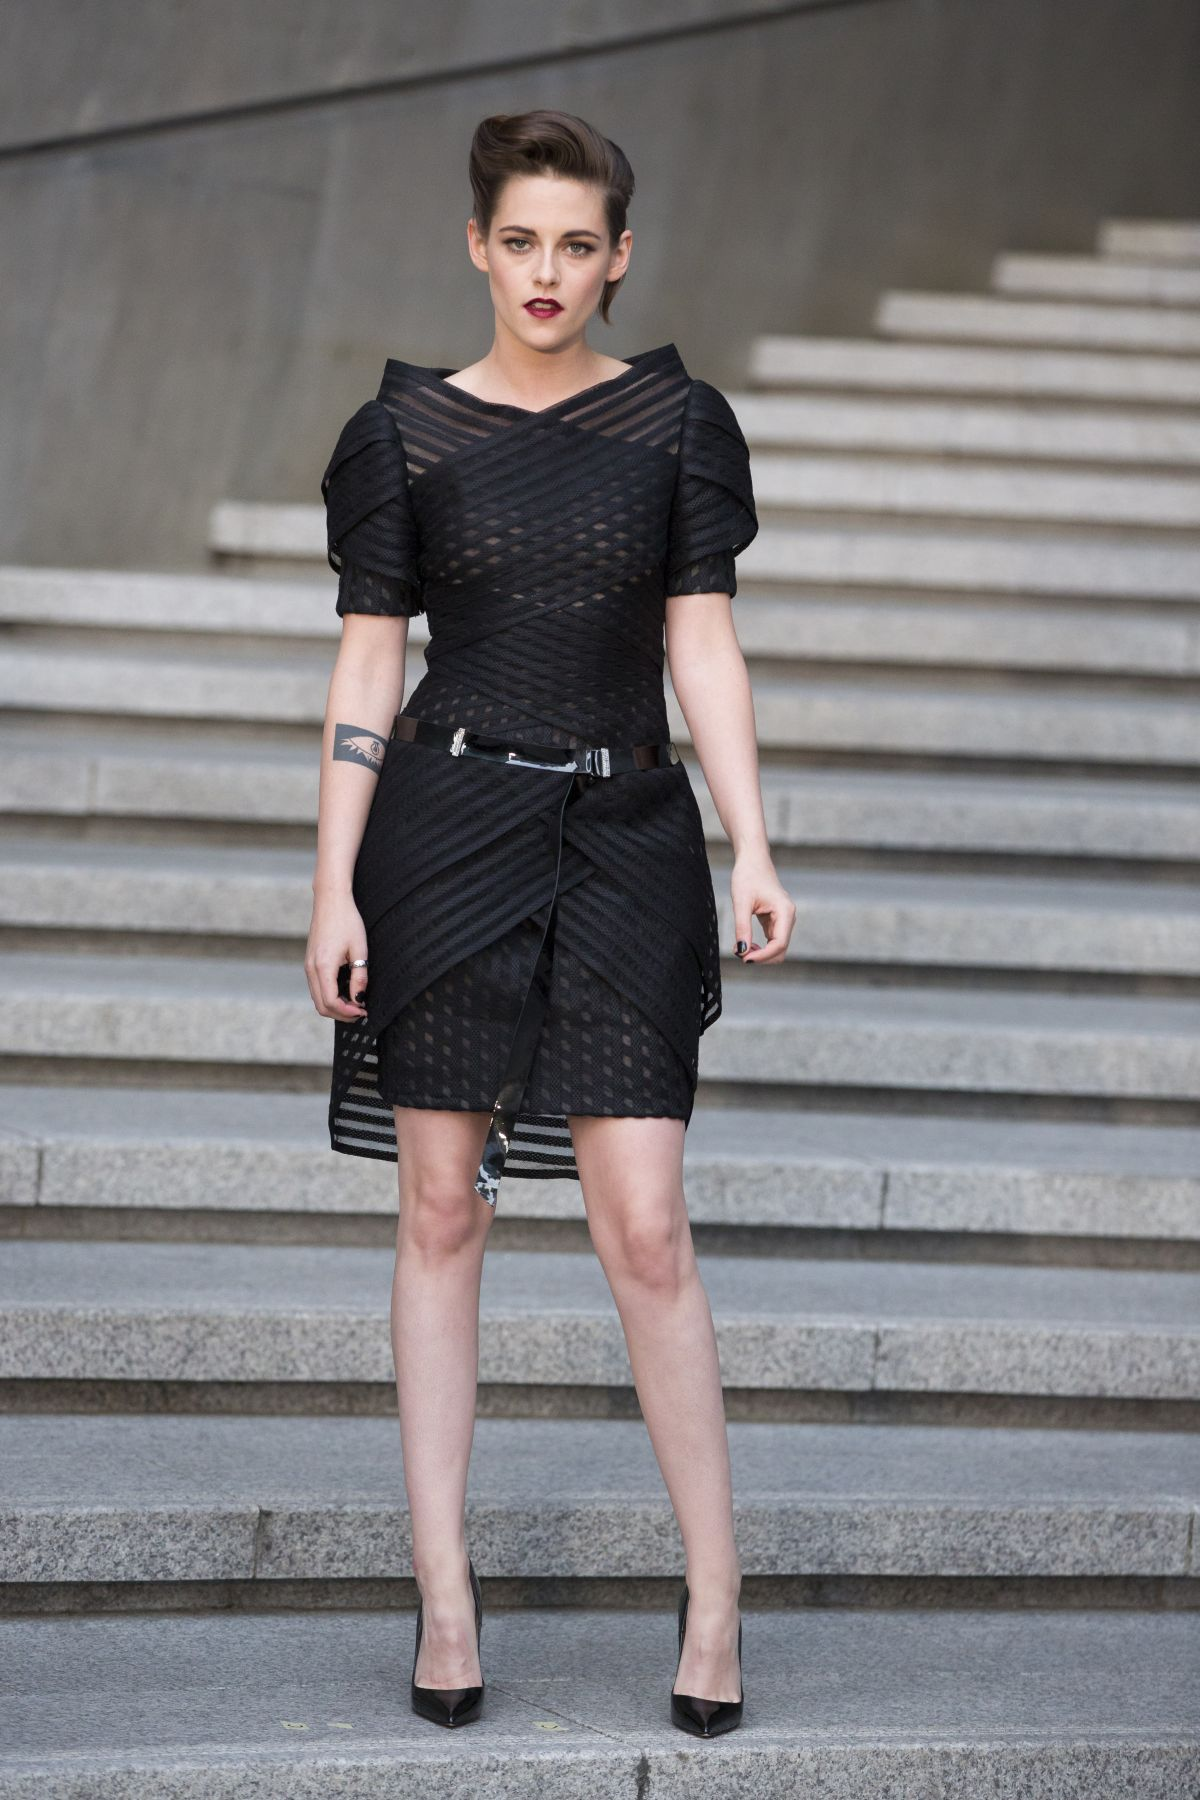 Kristen Stewart At Chanel Cruise 2015 2016 Fashion Show Celebzz Celebzz